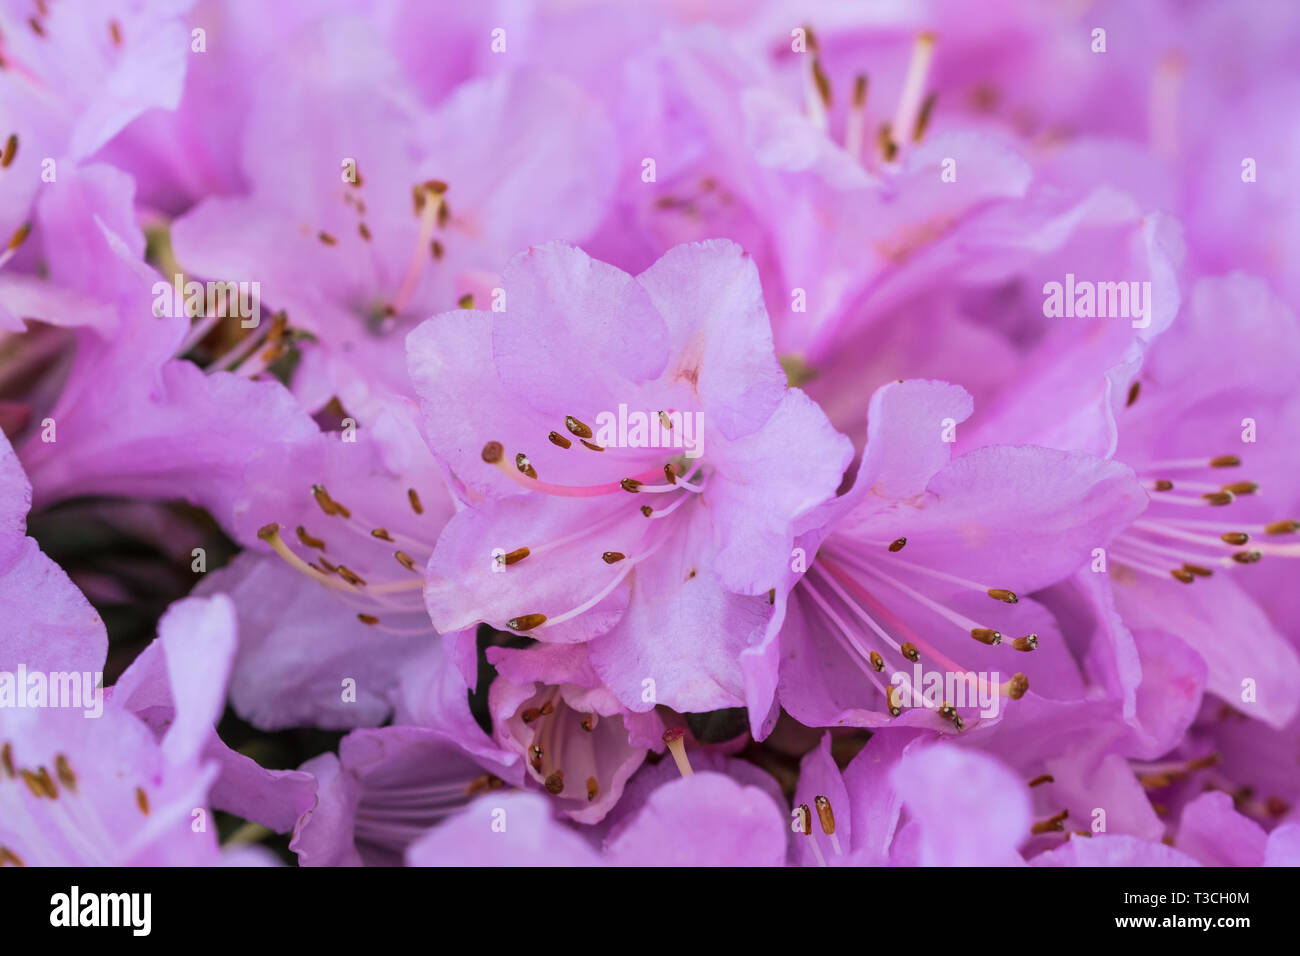 Small pink flowers from a Dwarf Rhododendron 'Snipe' plant in Spring in West Sussex, UK. - Stock Image